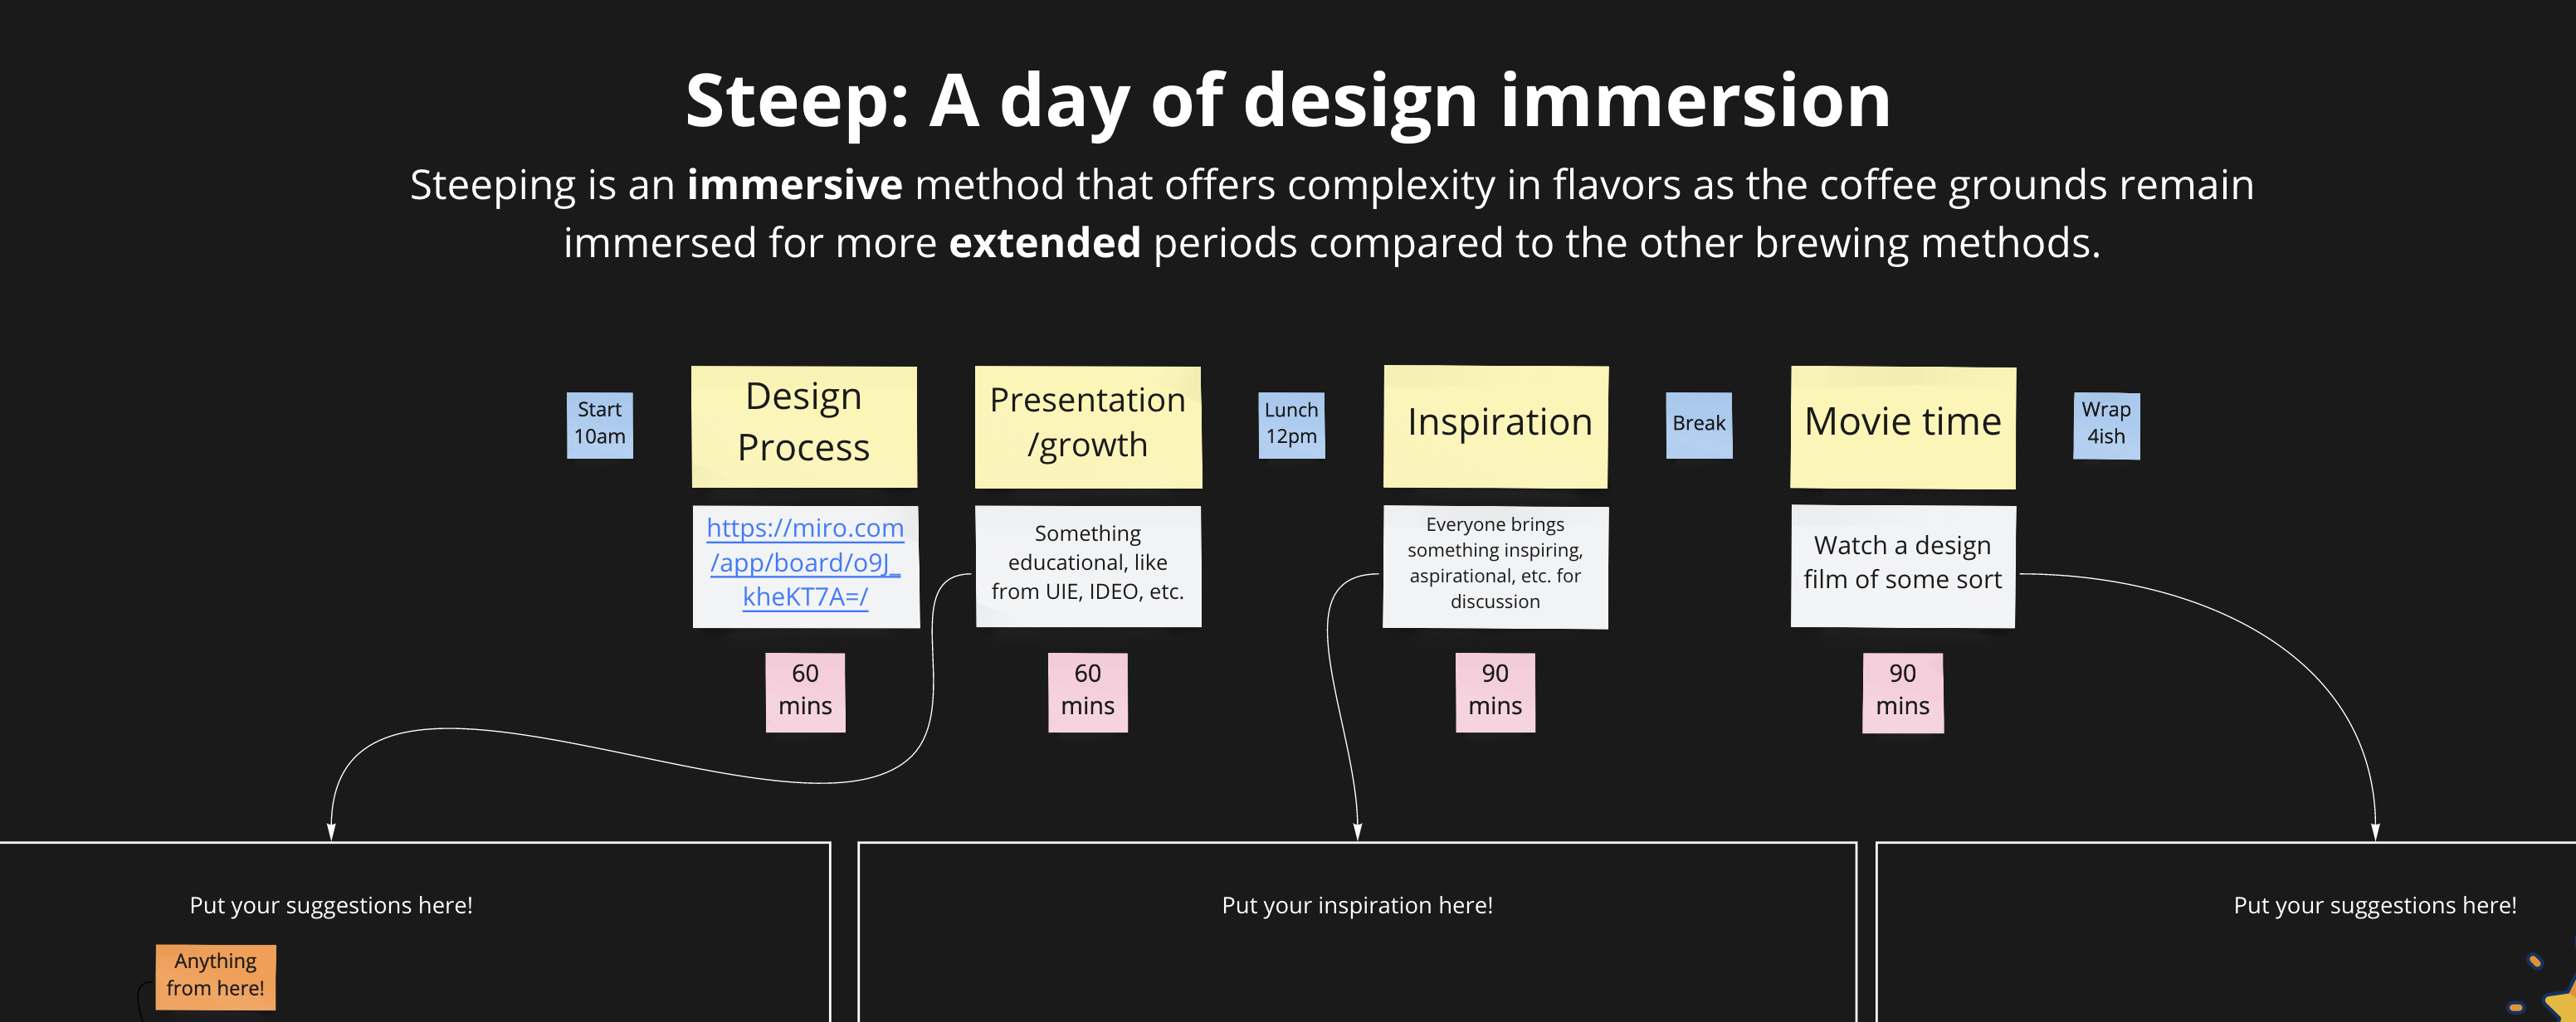 Miro board plan for steep immersion day for design